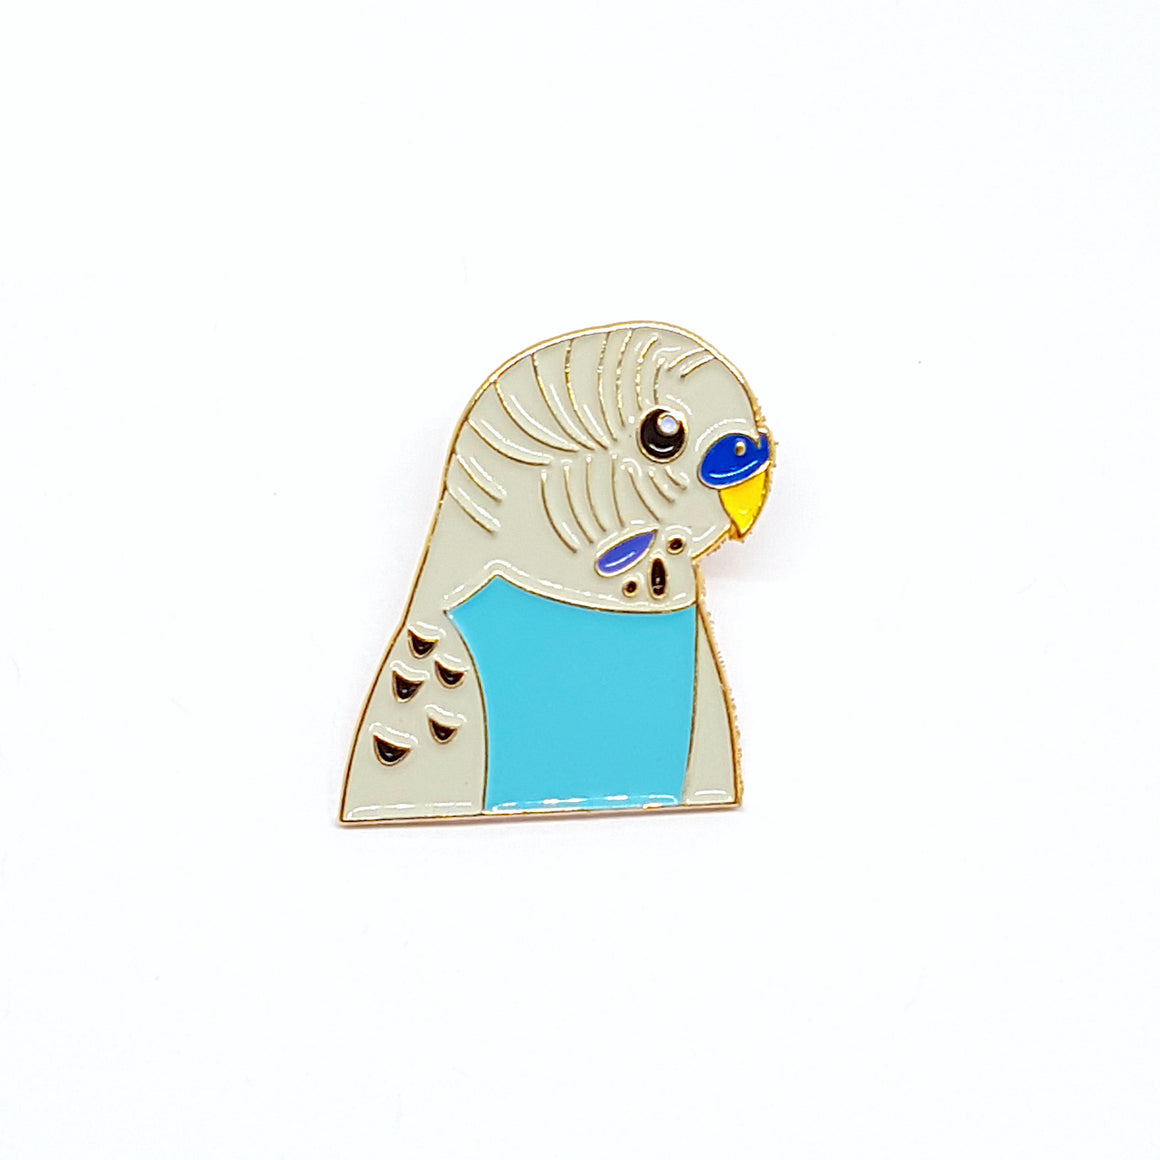 Blue Budgie Enamel Pin by Patch Press